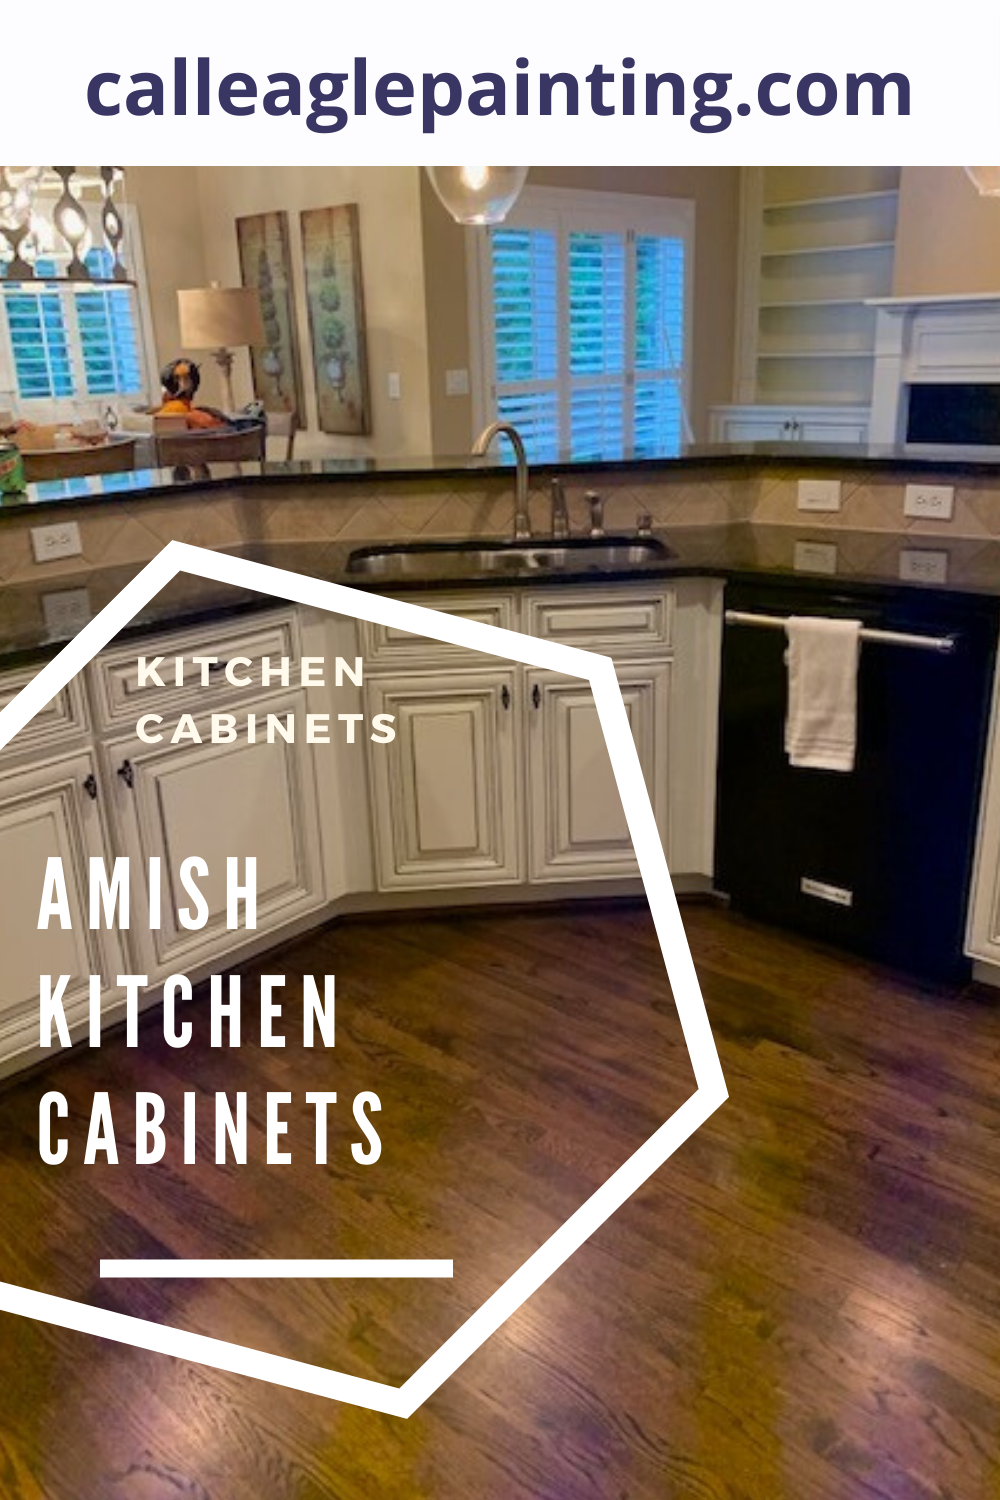 Amish Kitchen Cabinets In 2020 Amish Kitchen Cabinets Kitchen Cabinets Kitchen Cupboard Doors